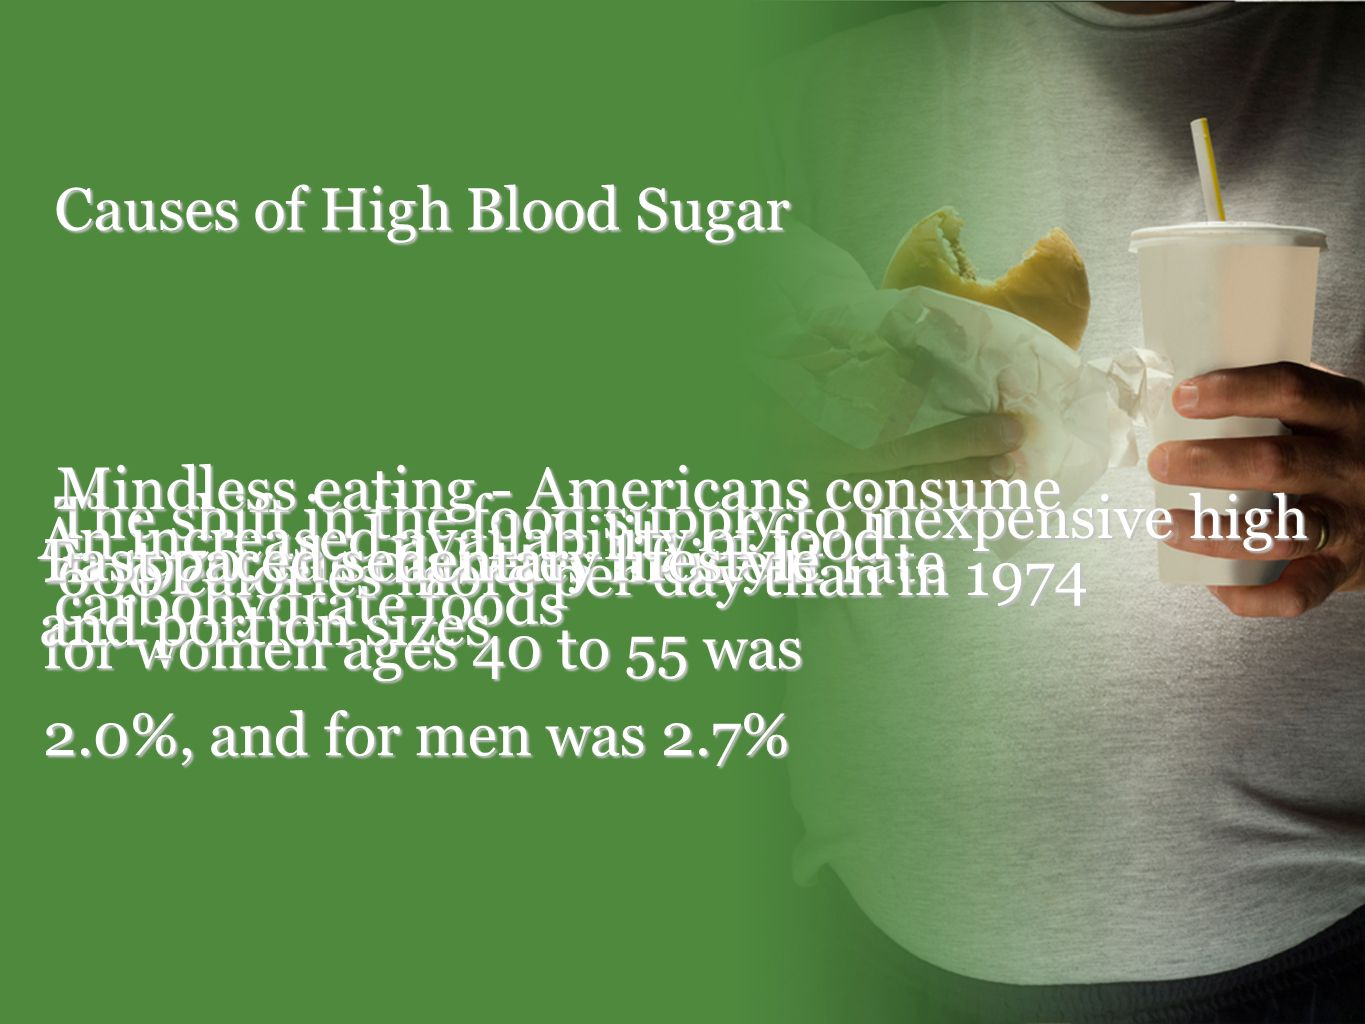 Causes of High Blood Sugar In 1970, the diabetes incident rate for women ages 40 to 55 was 2.0%, and for men was 2.7% The shift in the food supply to inexpensive high carbohydrate foods Mindless eating - Americans consume 600 calories more per day than in 1974 An increased availability of food and portion sizes Fast paced sedentary lifestyle